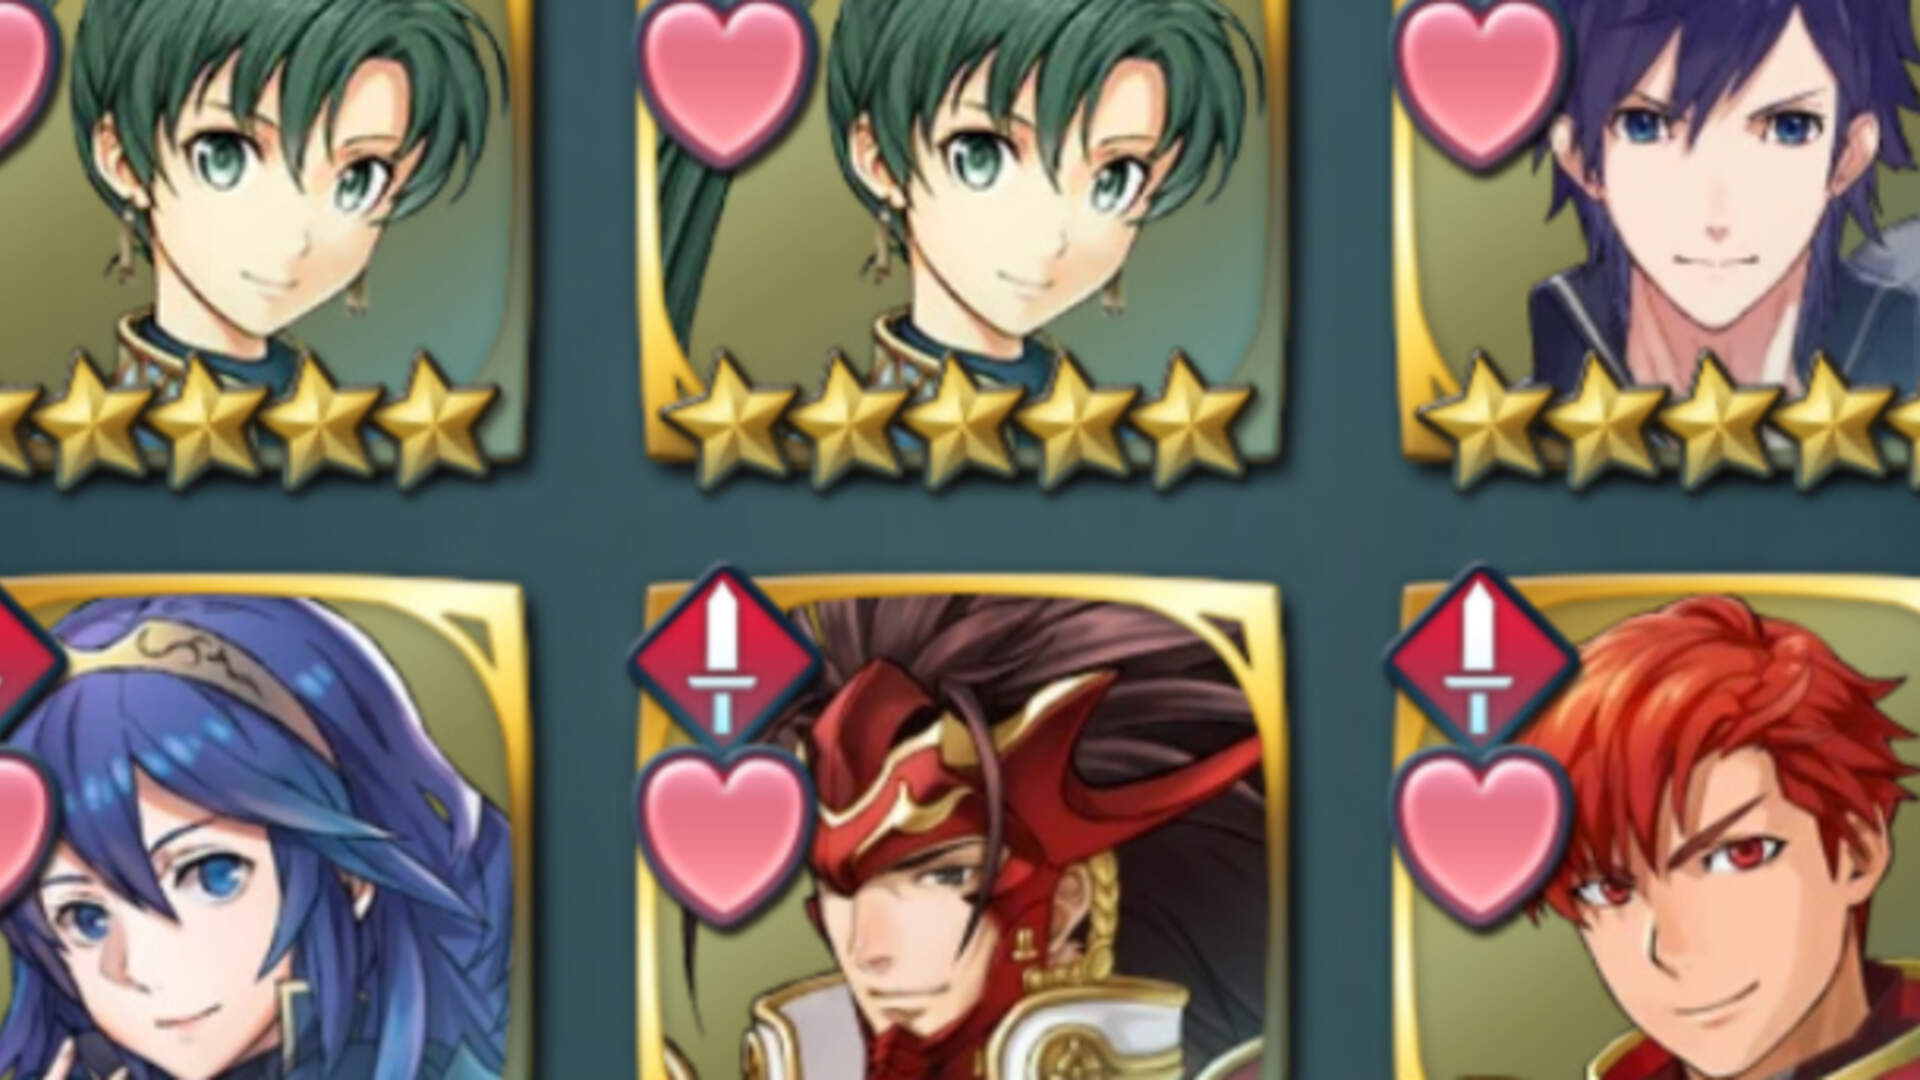 Fire Emblem Heroes Player Spends $1000, Never Gets Hector or Leo